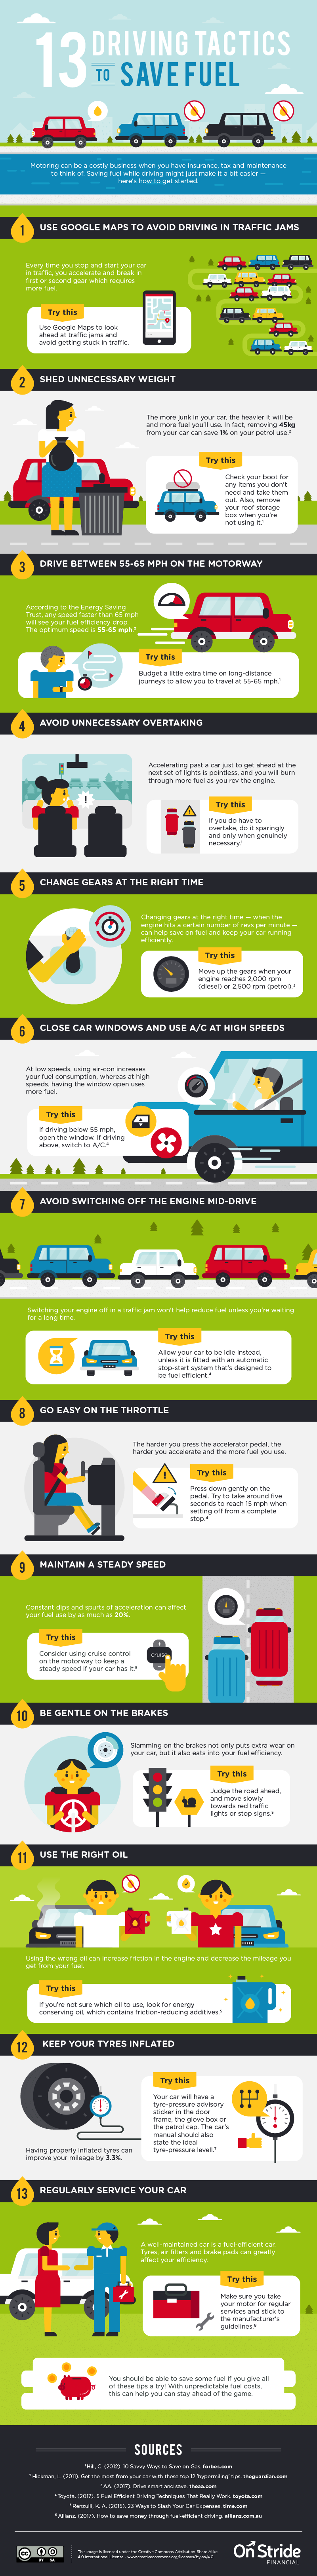 13-driving-tactics-to-save-fuel